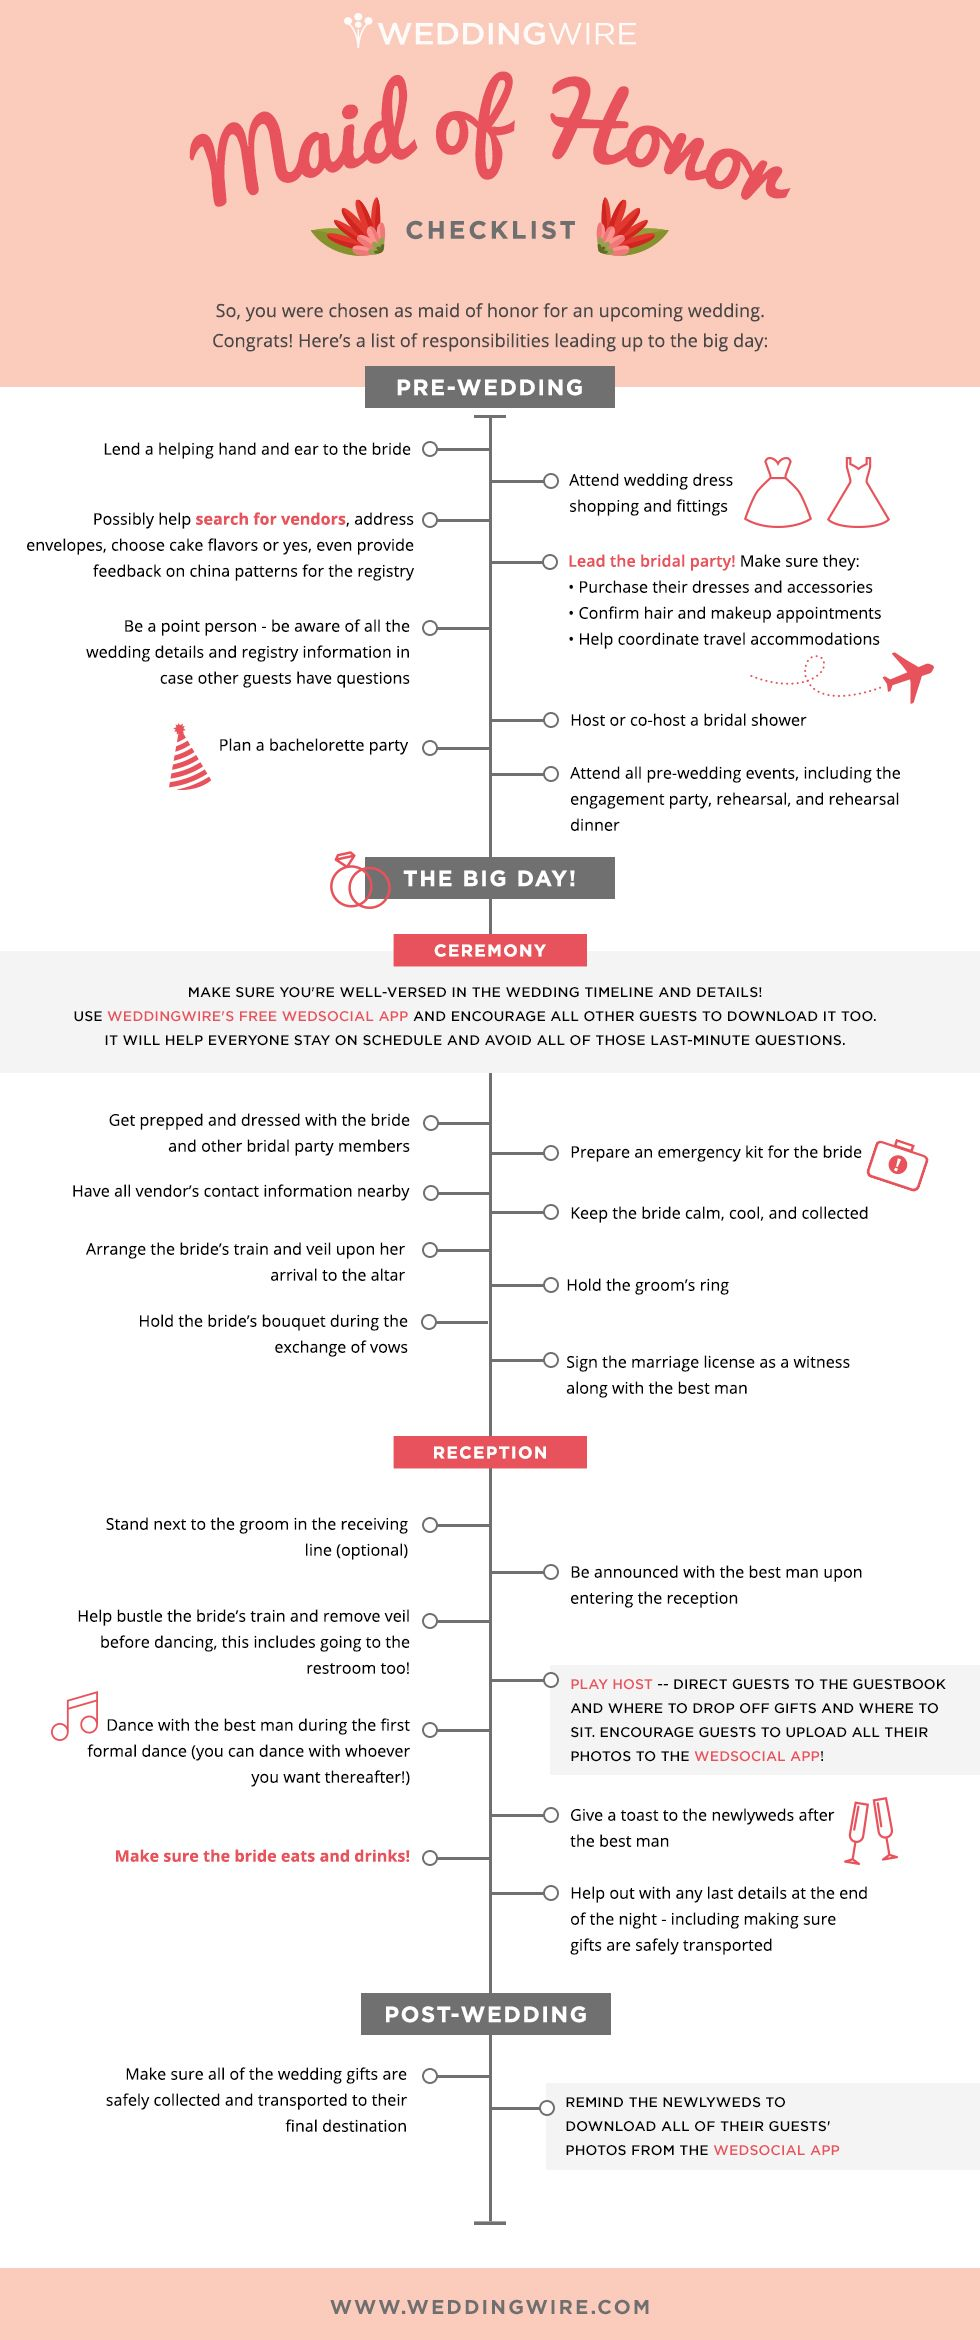 The Ultimate Maid Of Honor Checklist Share With Your Moh 3 Weddingtips